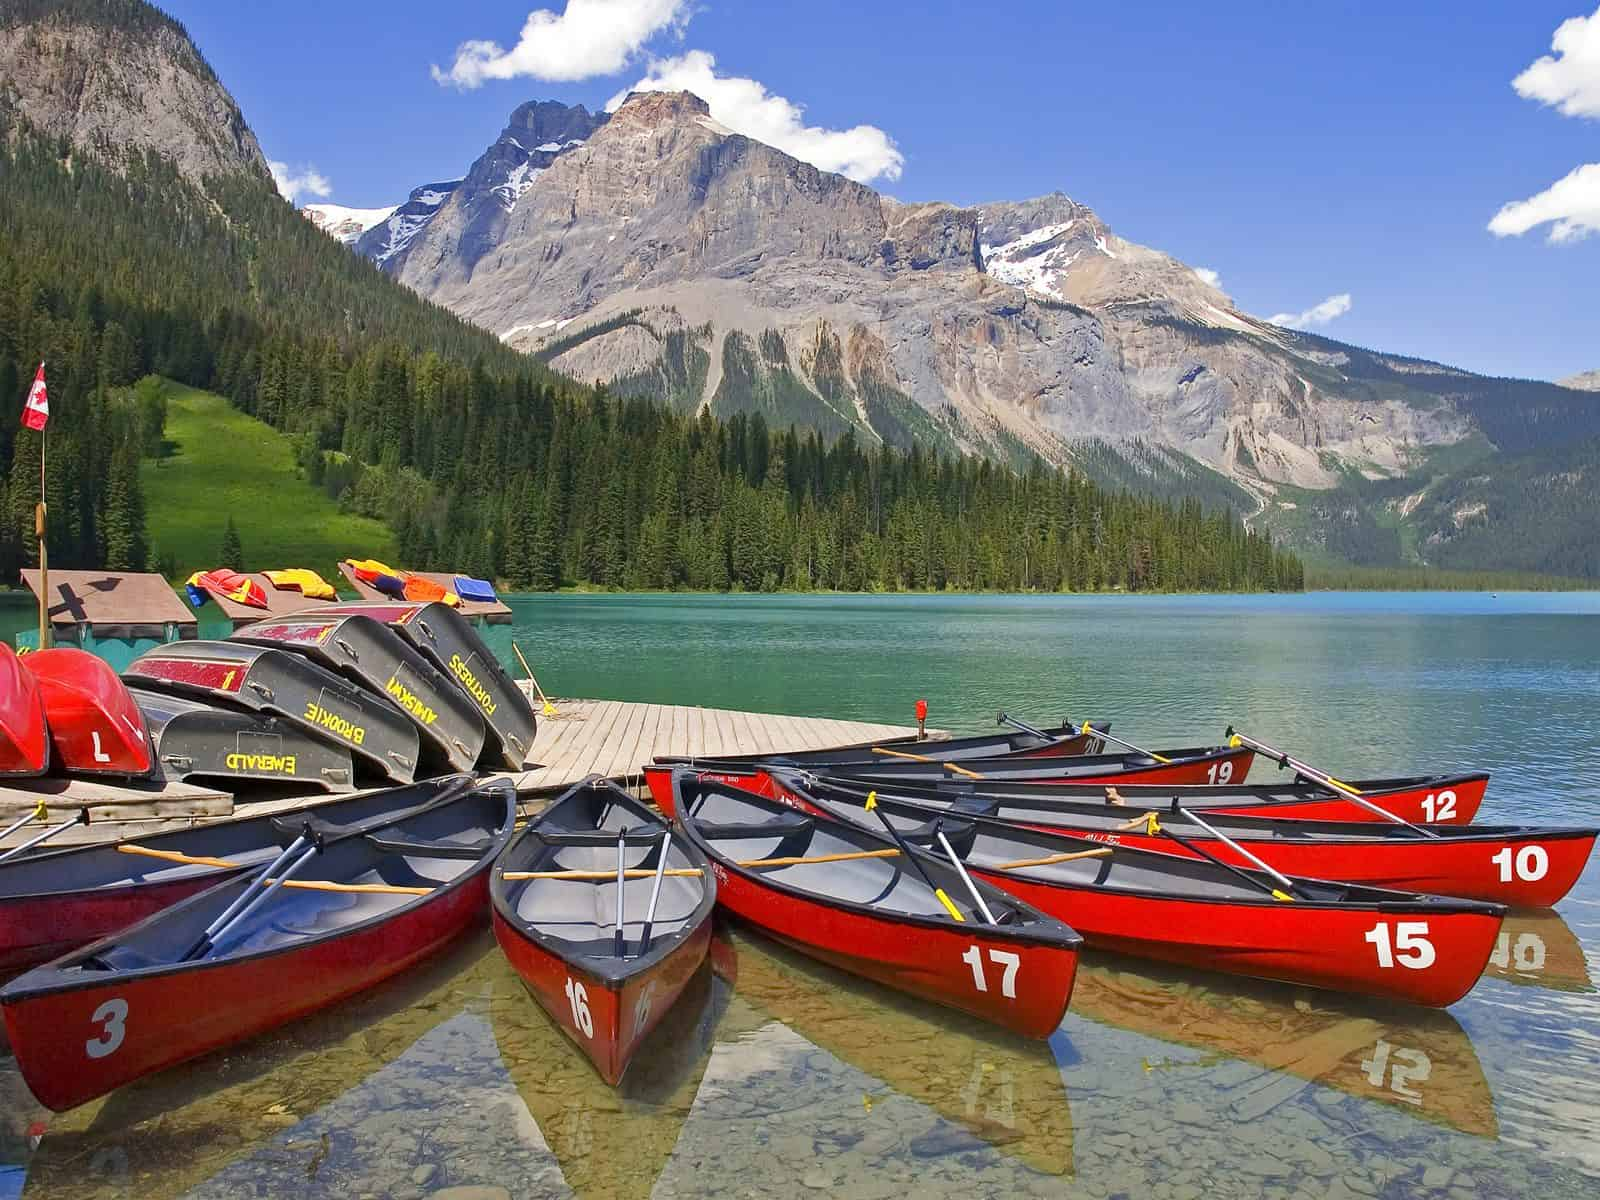 Yoho National Park - Most Breathtaking National Parks in Canada